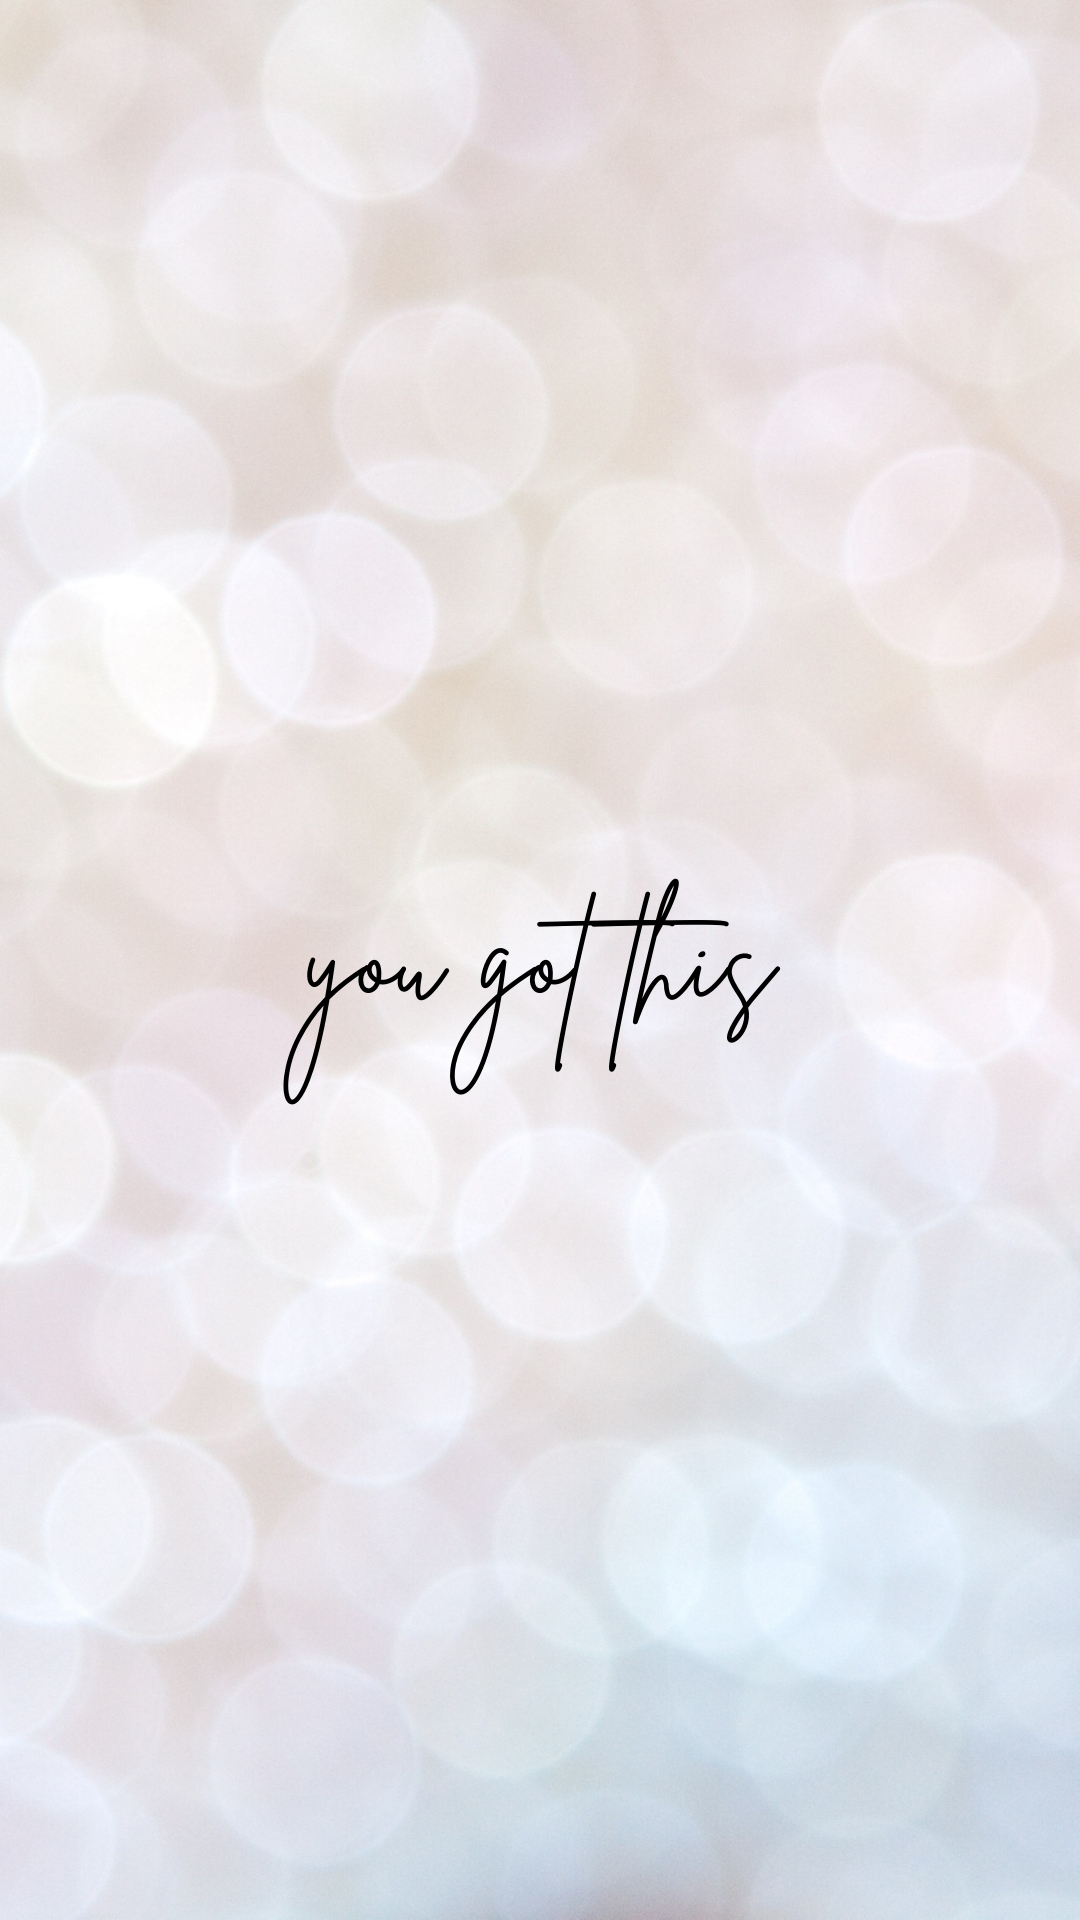 Inspirational Wallpapers: You Got This